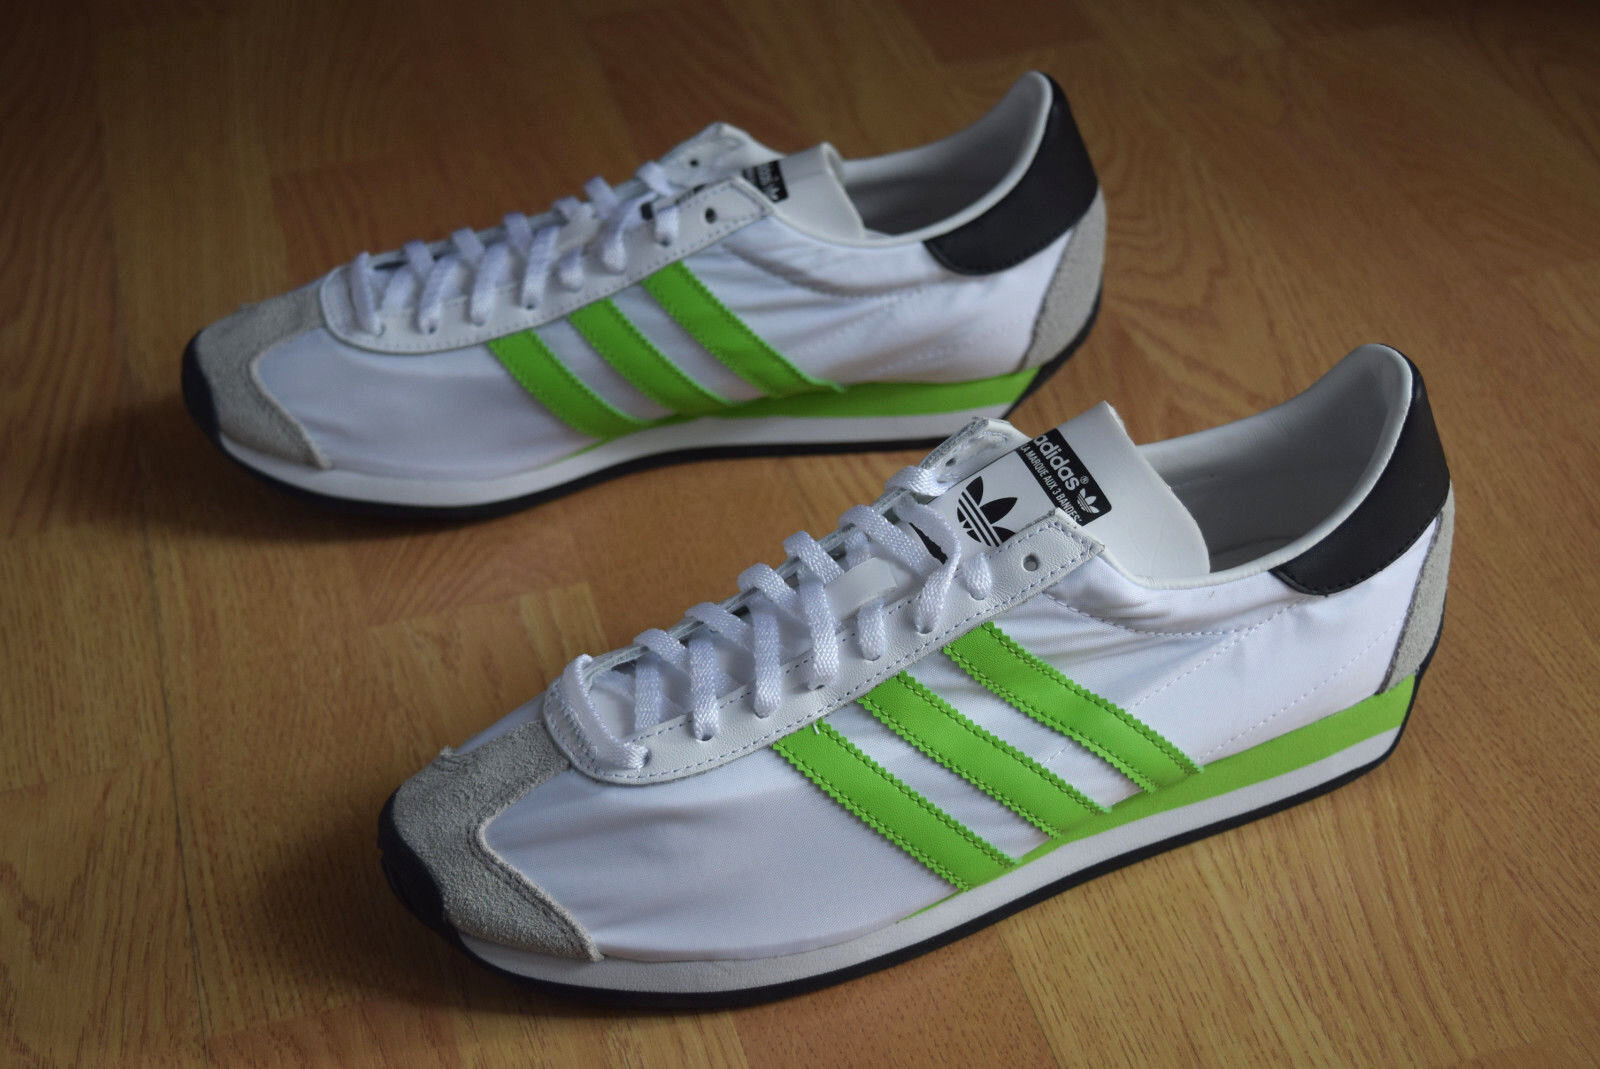 adidas Country OG 40,5 42 43 44,5 46 47 48,5 rom zx SL la trAineR gazelle S79109